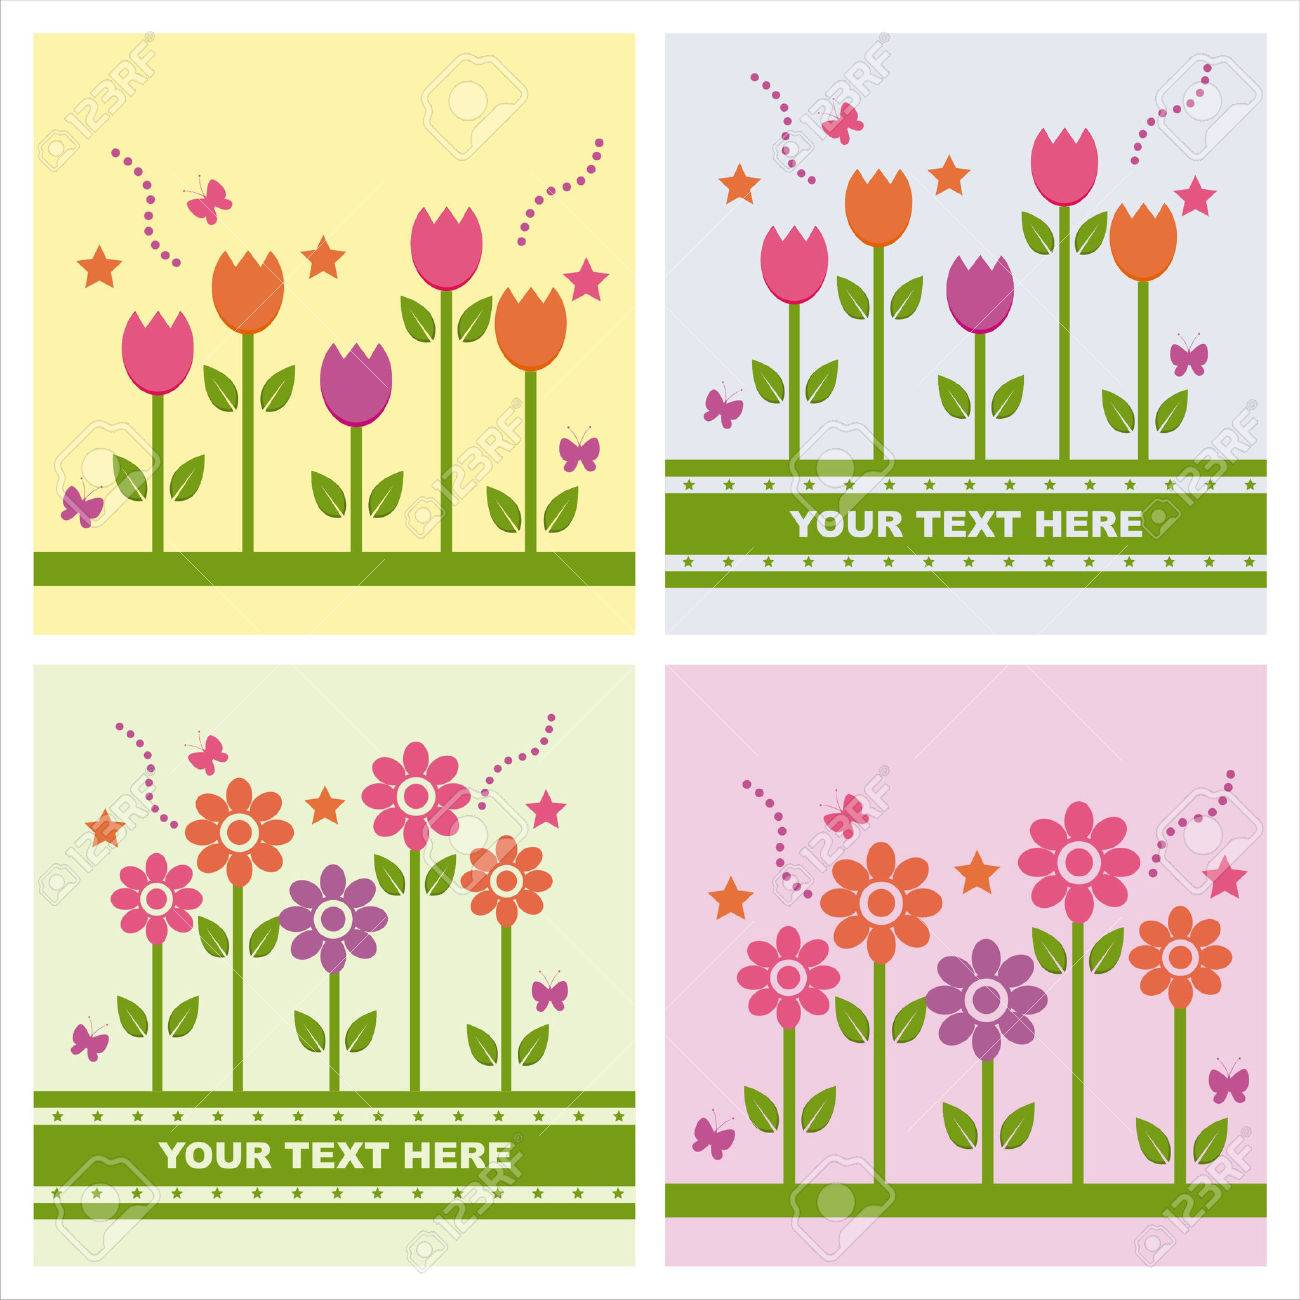 Cute spring flower - Vector Set Of 4 Cute Spring Backgrounds